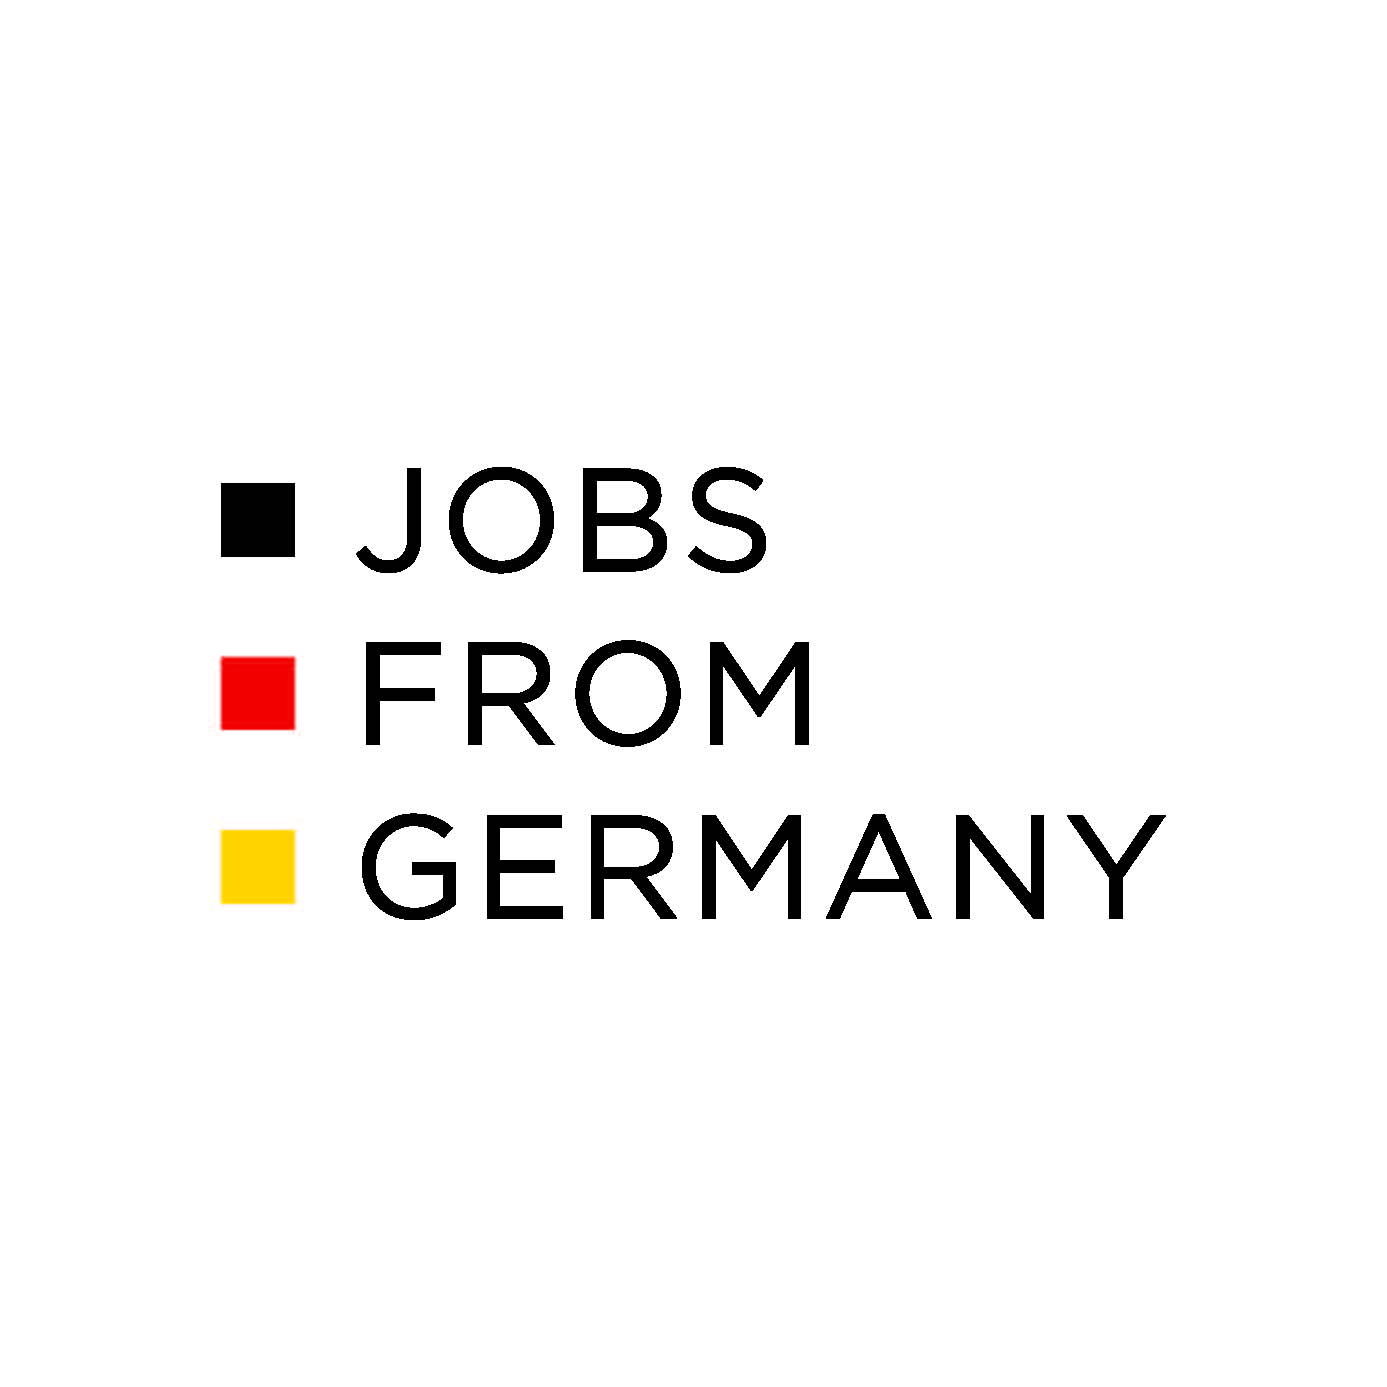 Jobs from Germany